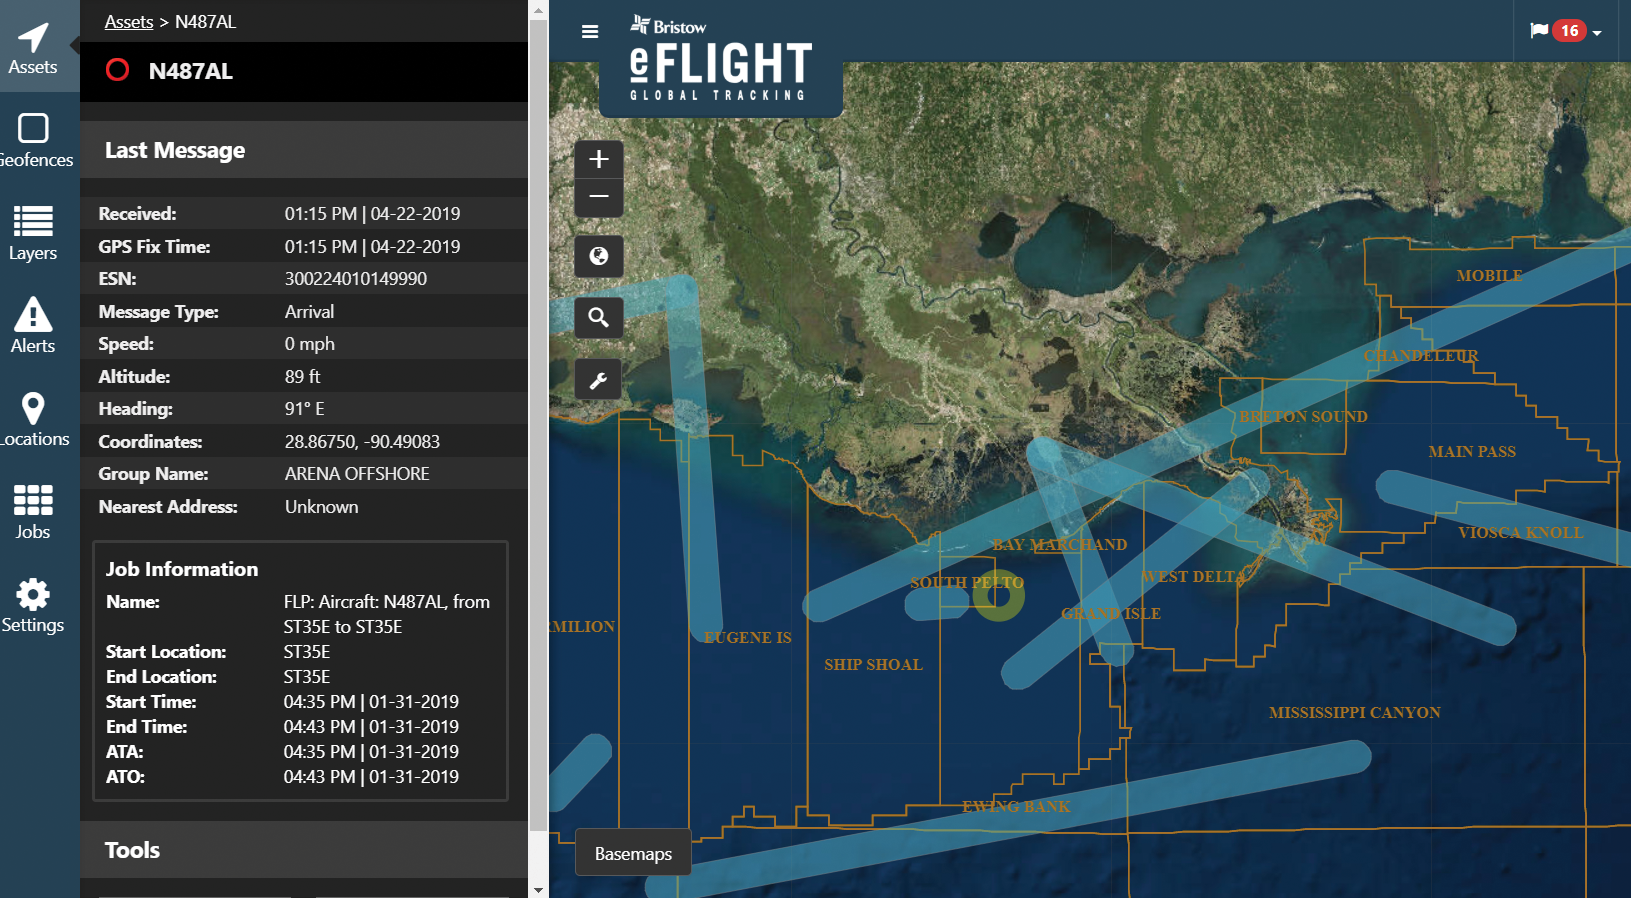 Bristow operators monitor over 73,000 takeoffs and landings annually with GeoDecisions Track.